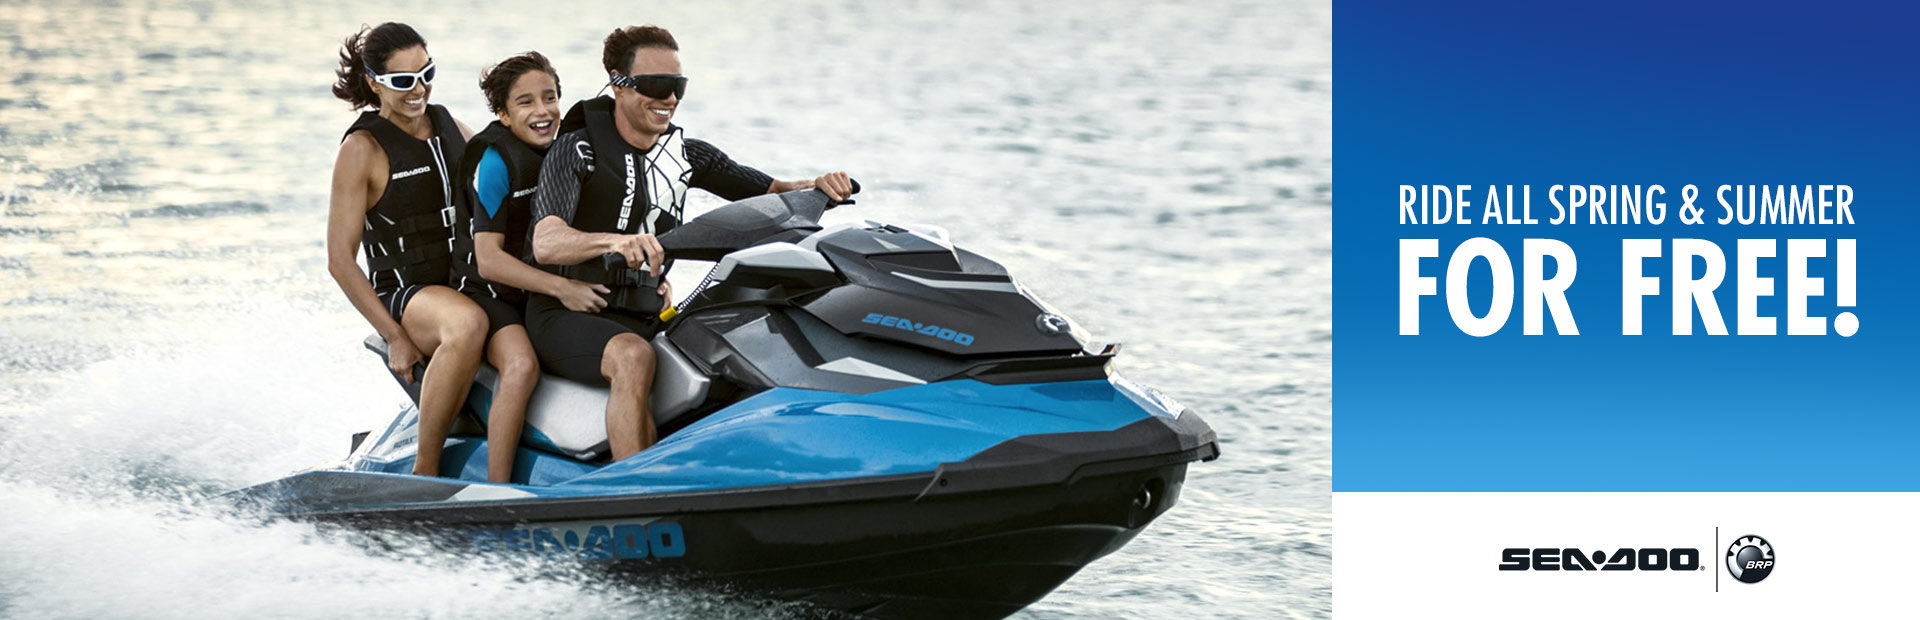 Sea-Doo: Ride All Spring and Summer for Free!